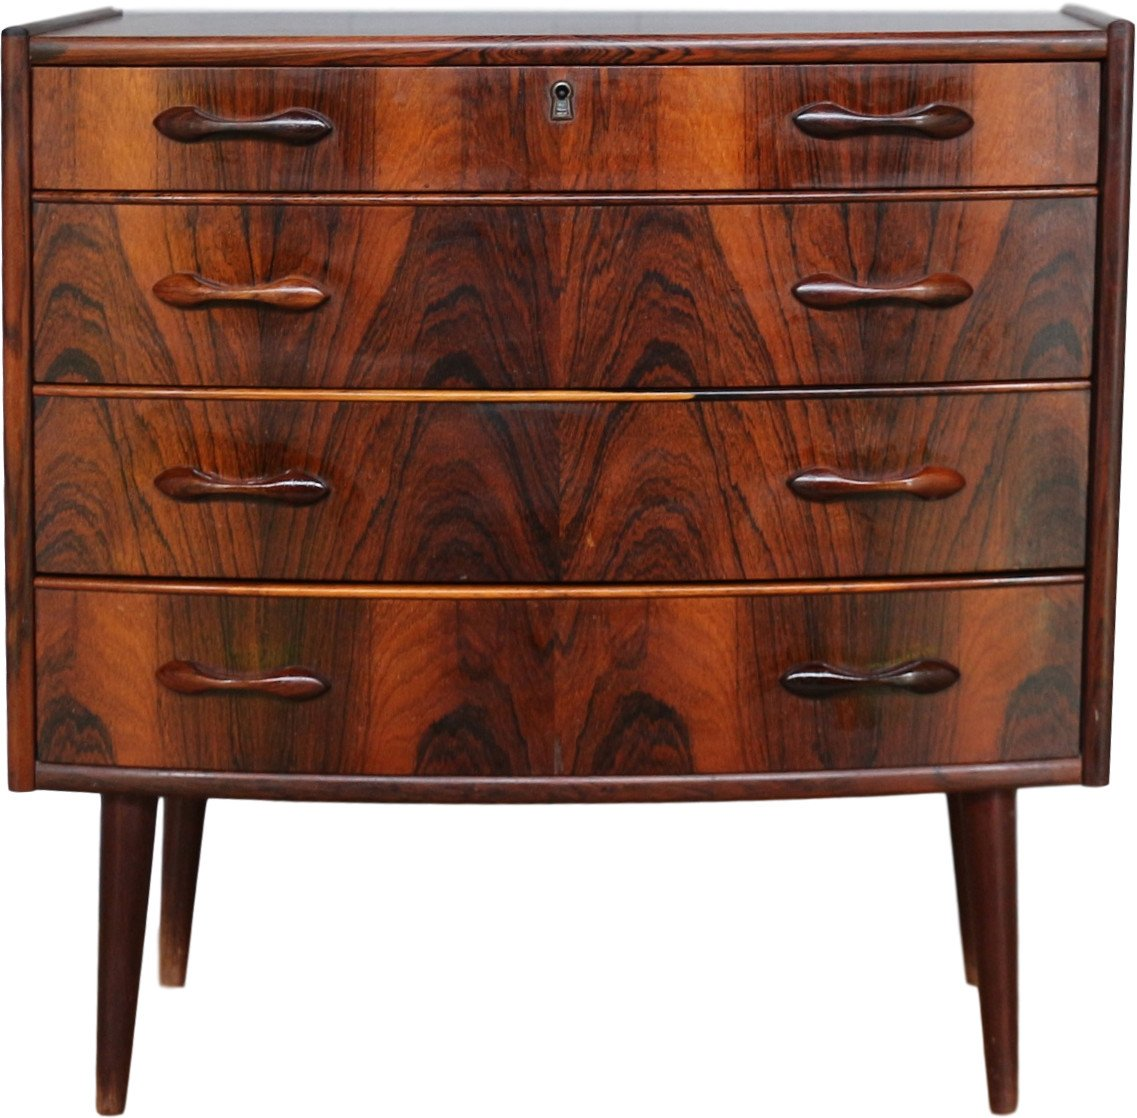 Chest of Drawers, Bröde Blinheim, Norway, 1960s